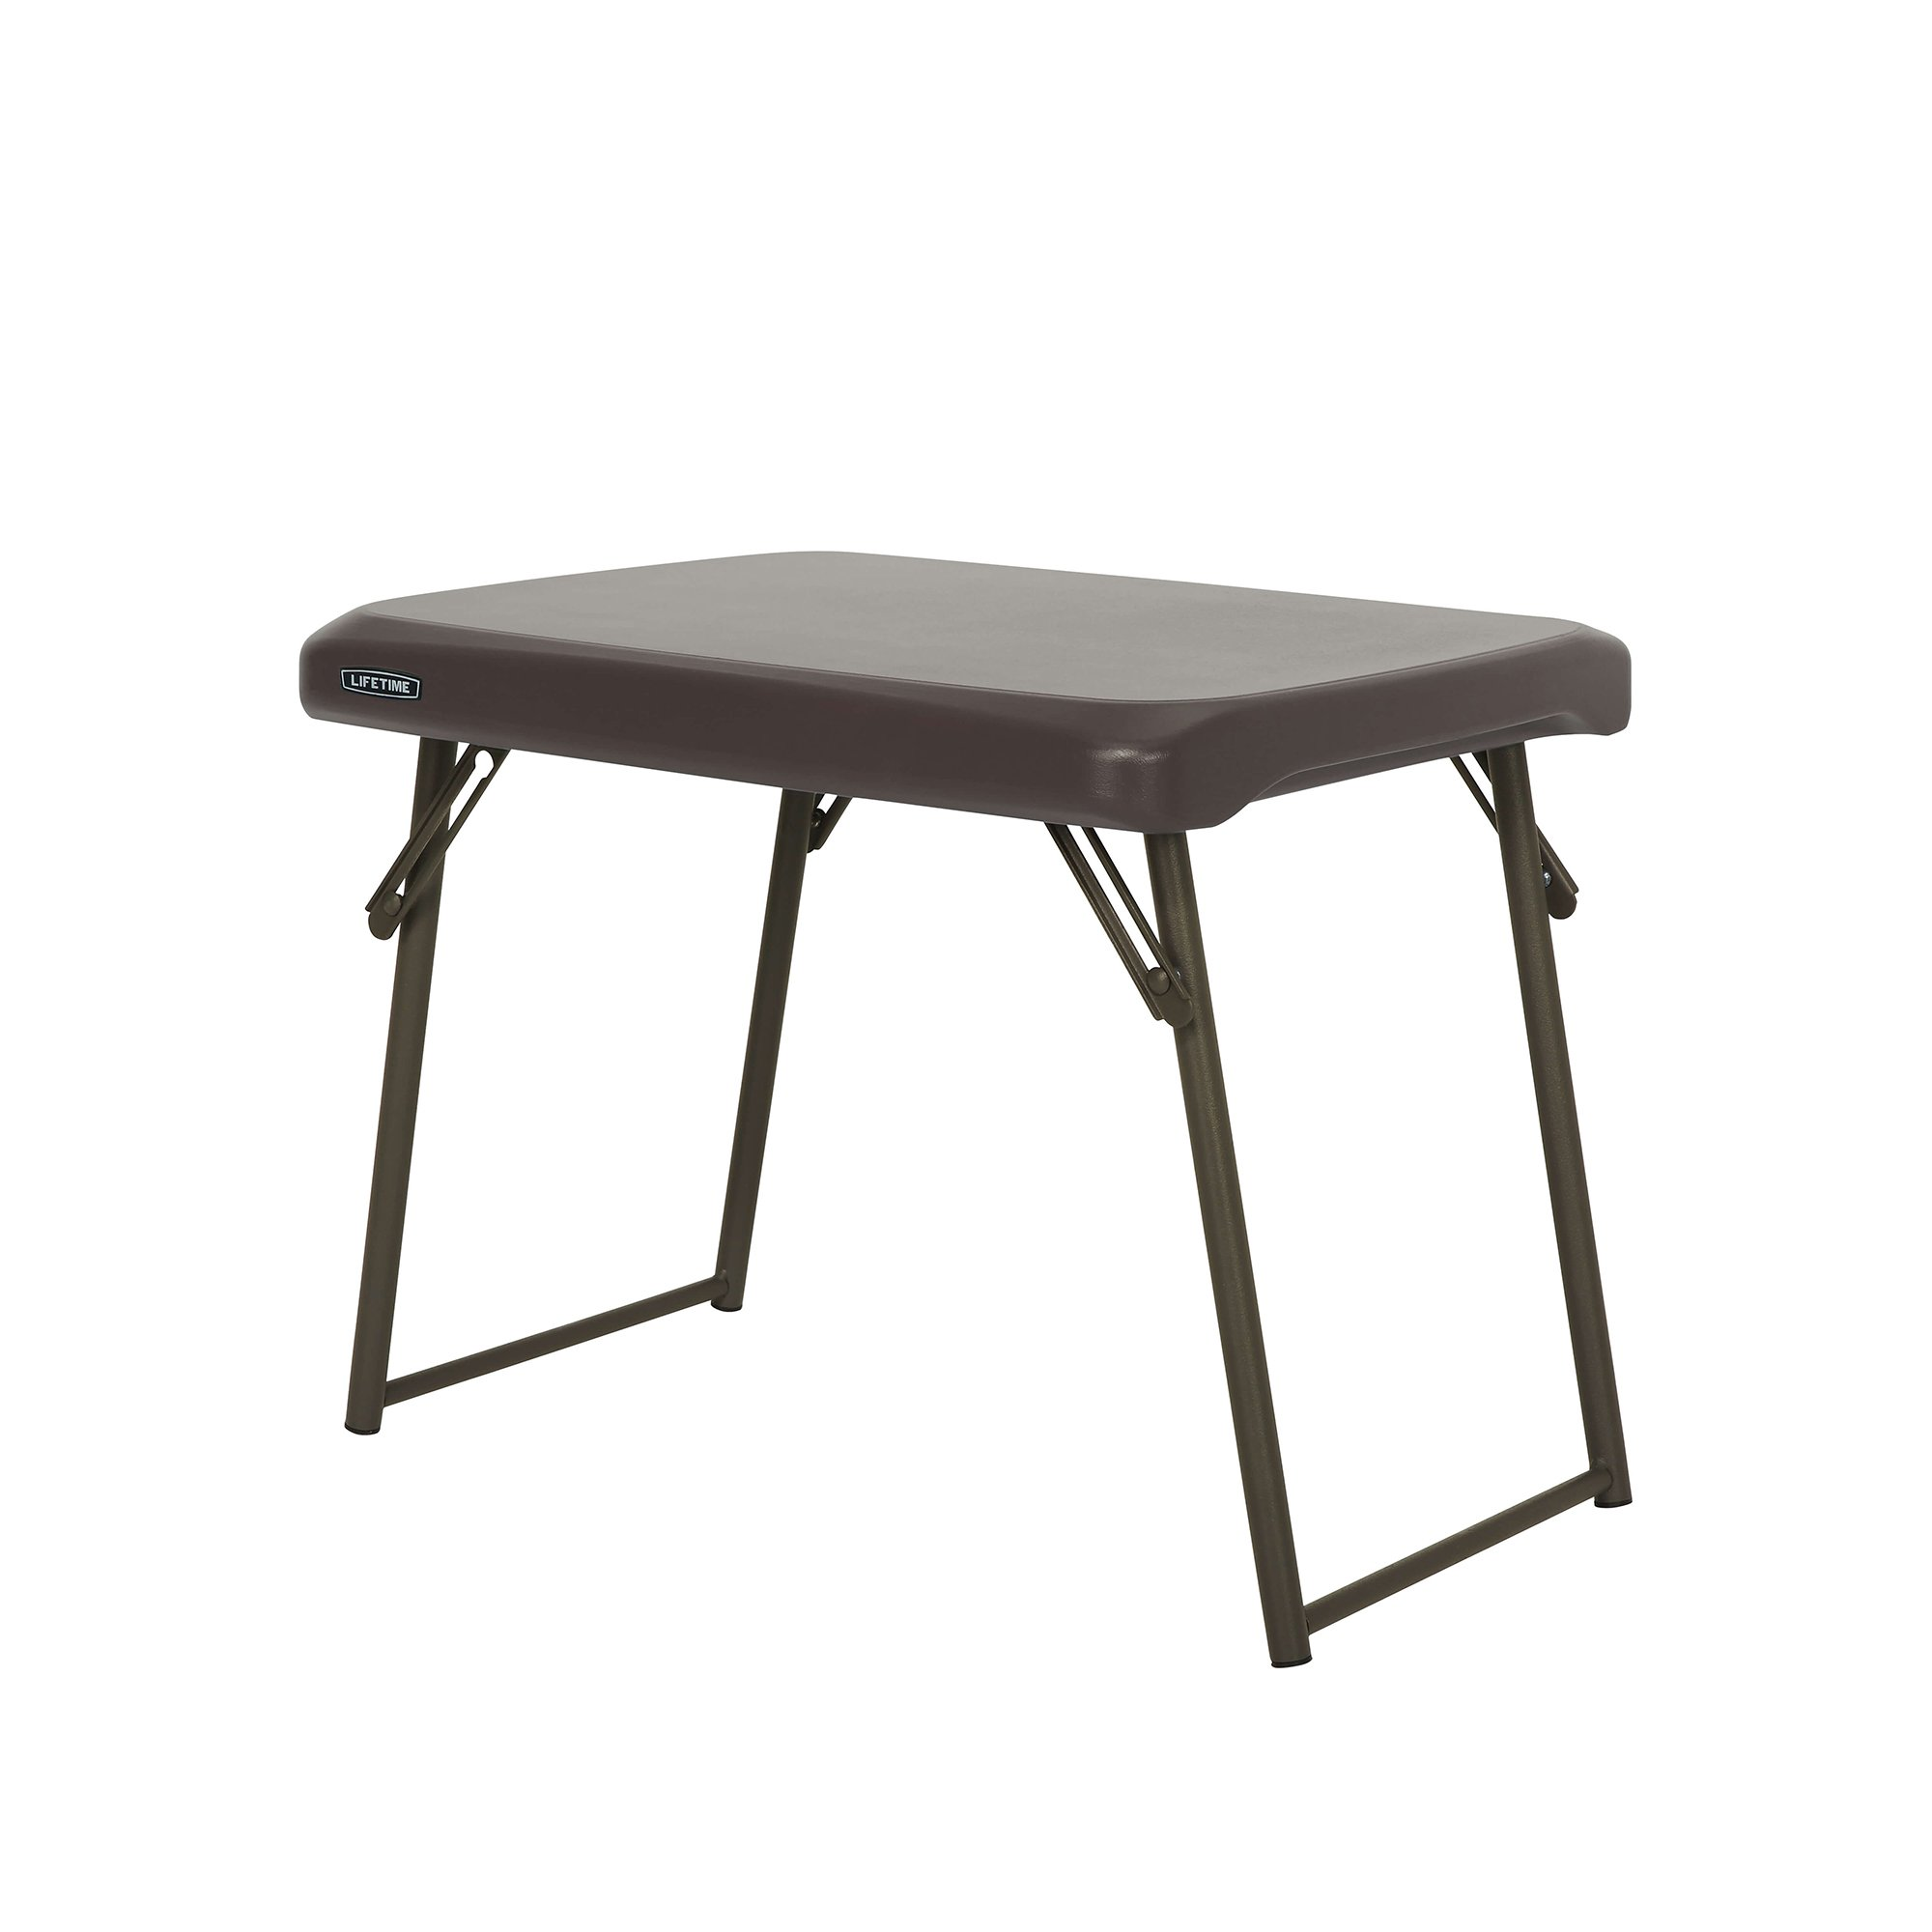 Lifetime 280488 Compact Folding Low Side Table for Camping, Brown by Lifetime